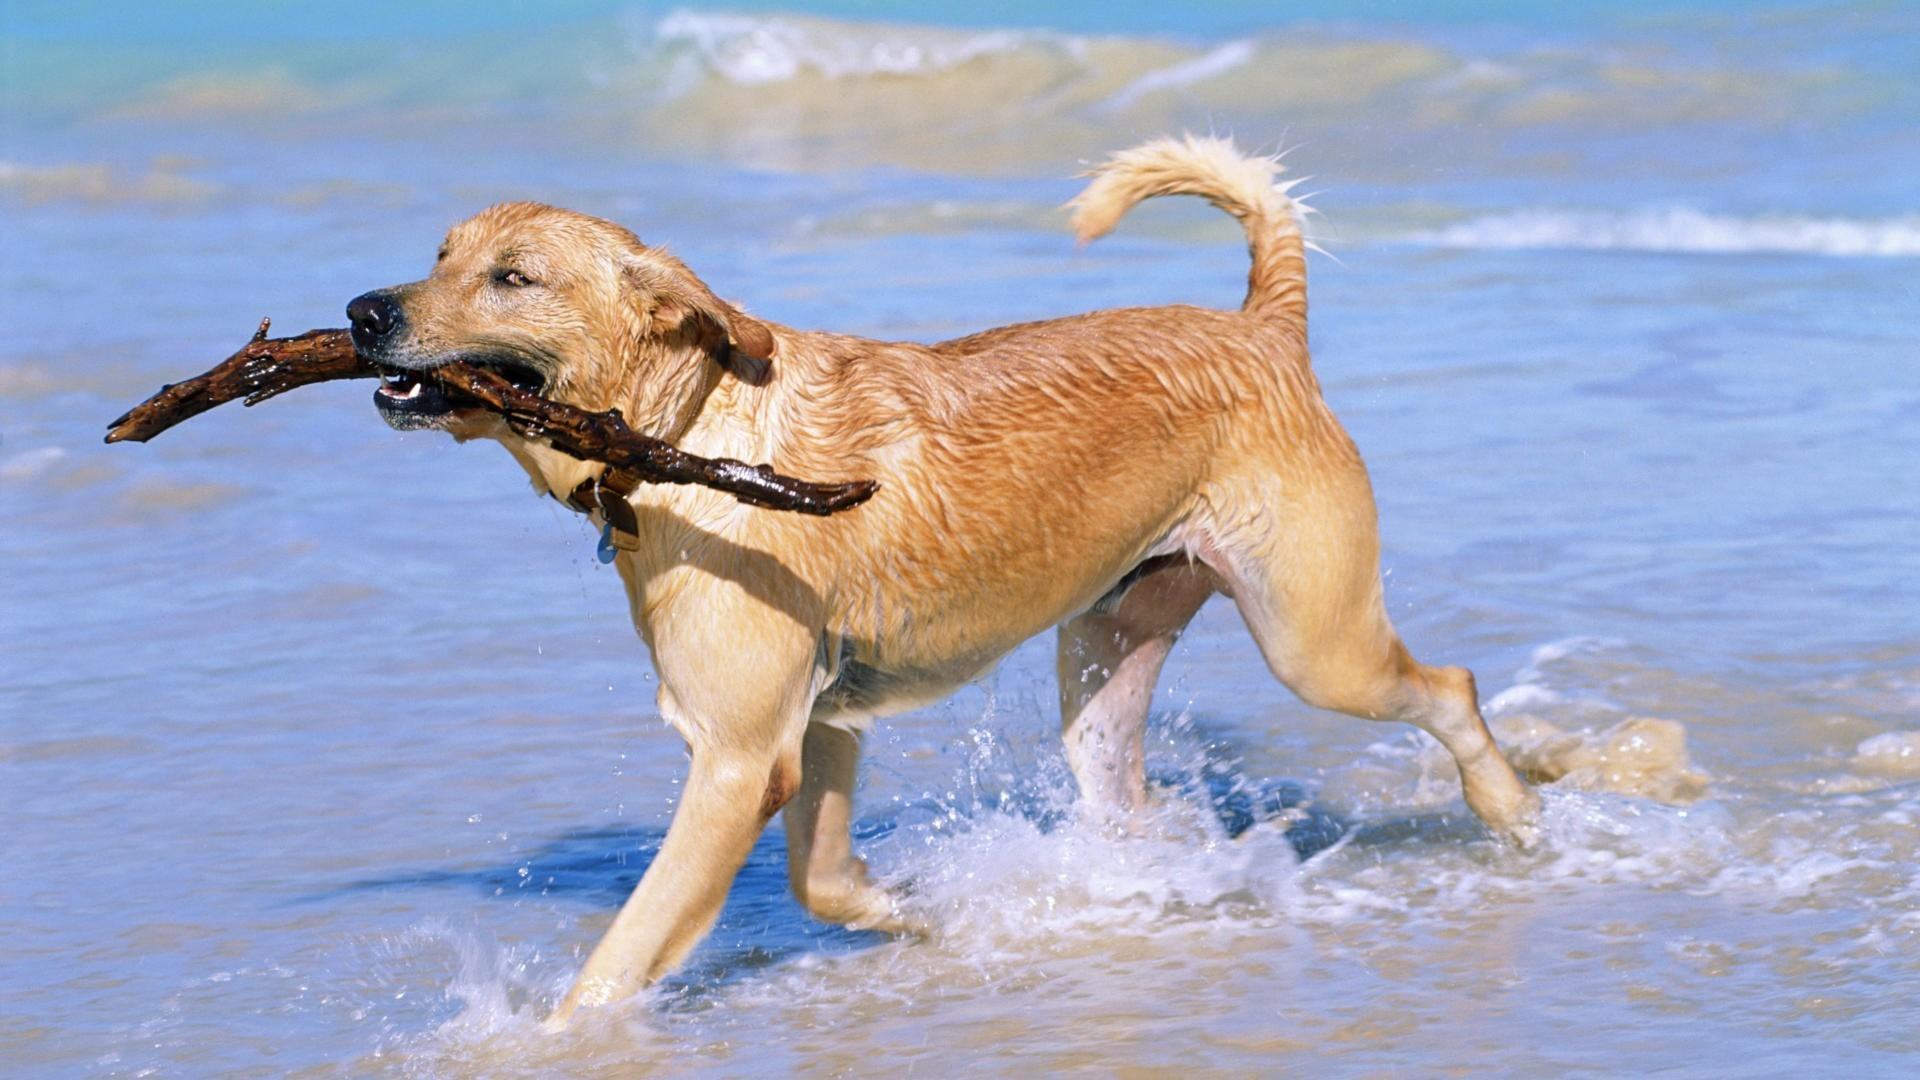 Beaches-golden-retriever-1920x1080-golden-retriever-via-www-all-in-wallpaper-wpc5802603